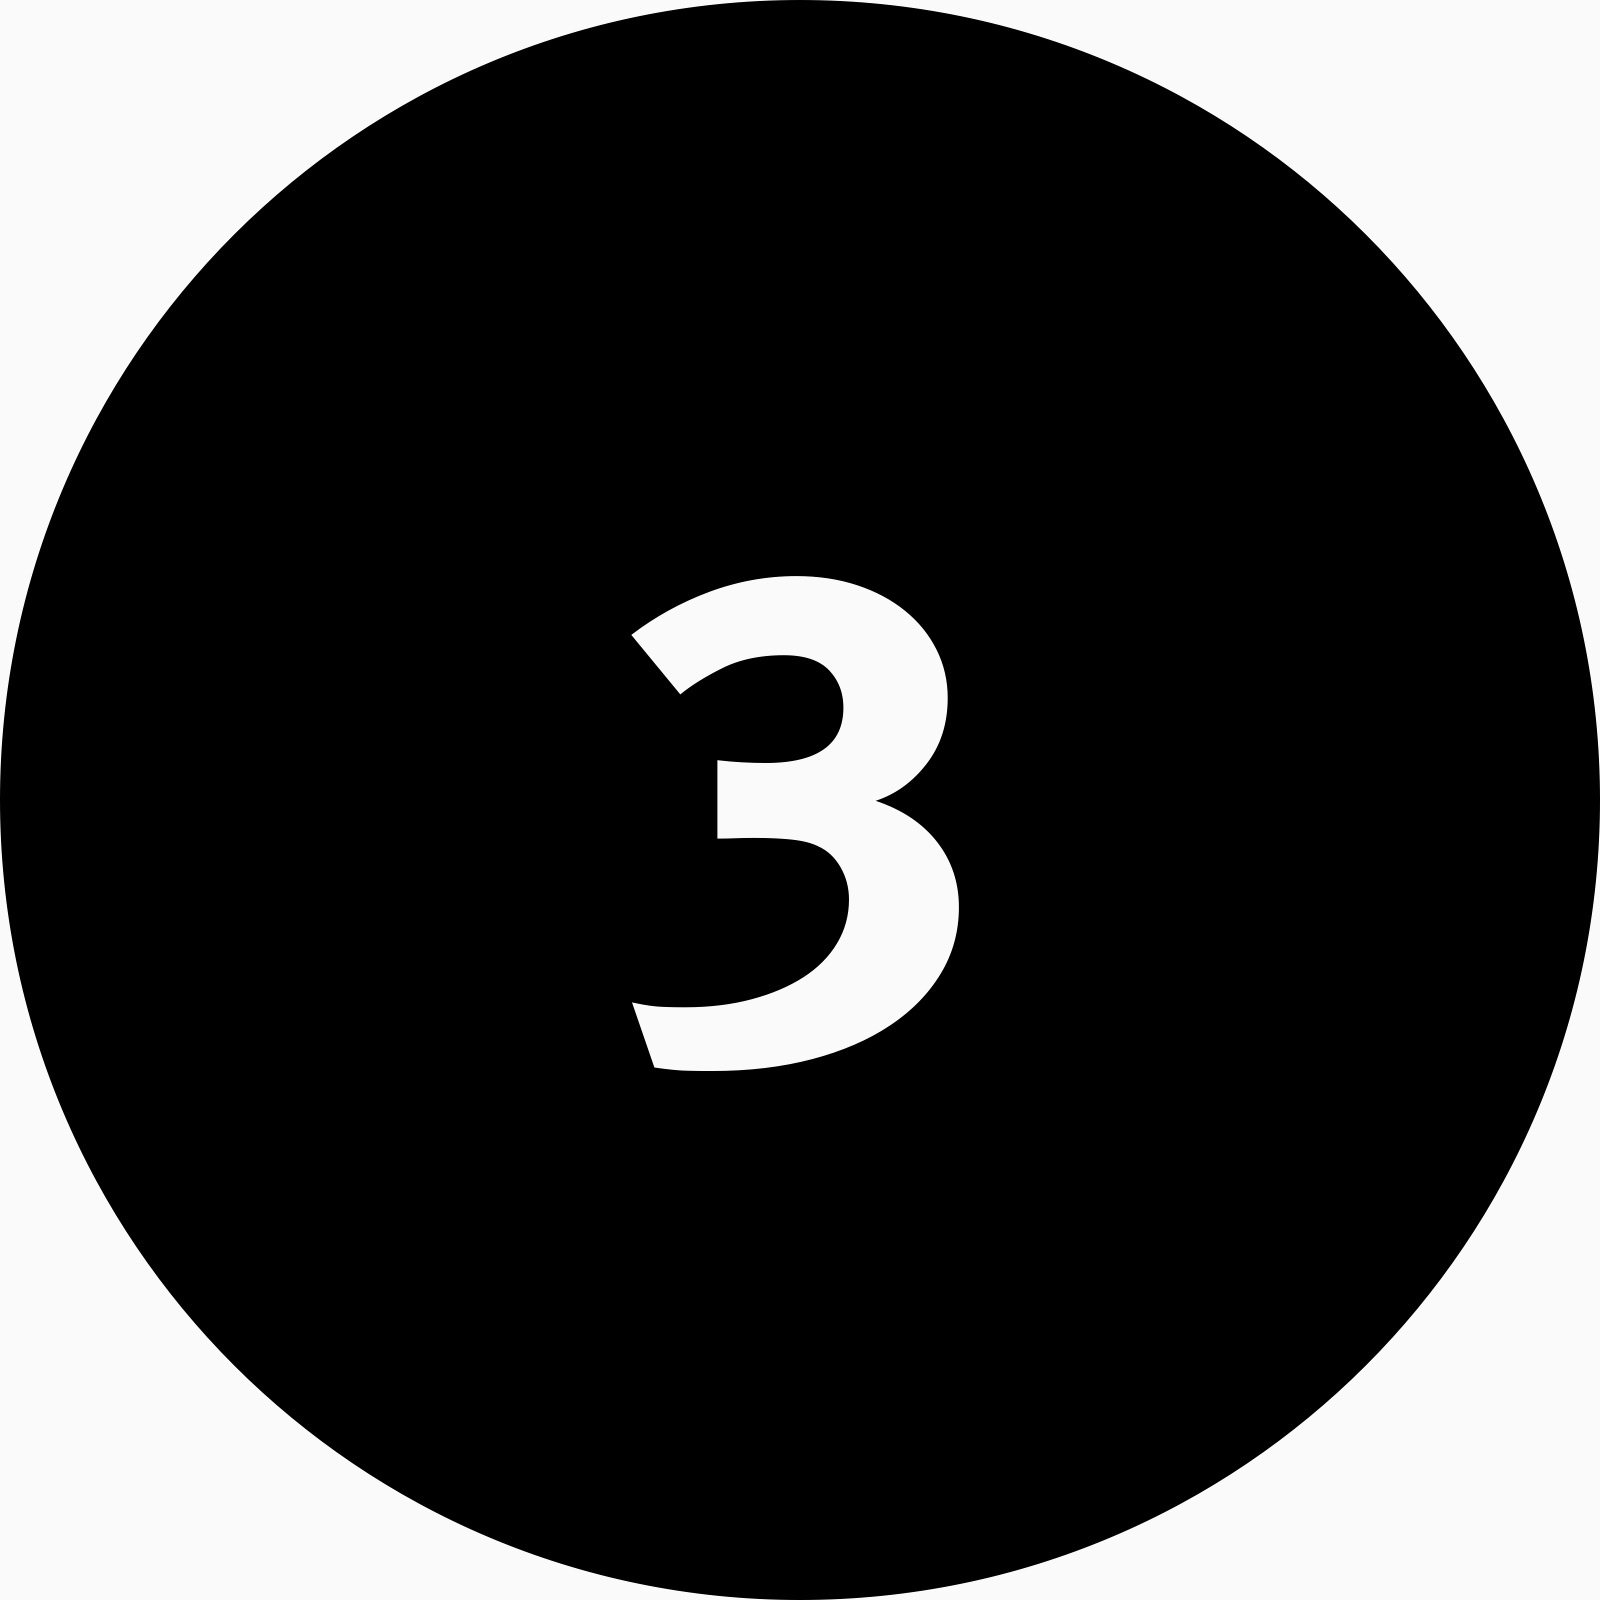 A black circle icon with the number three inside.